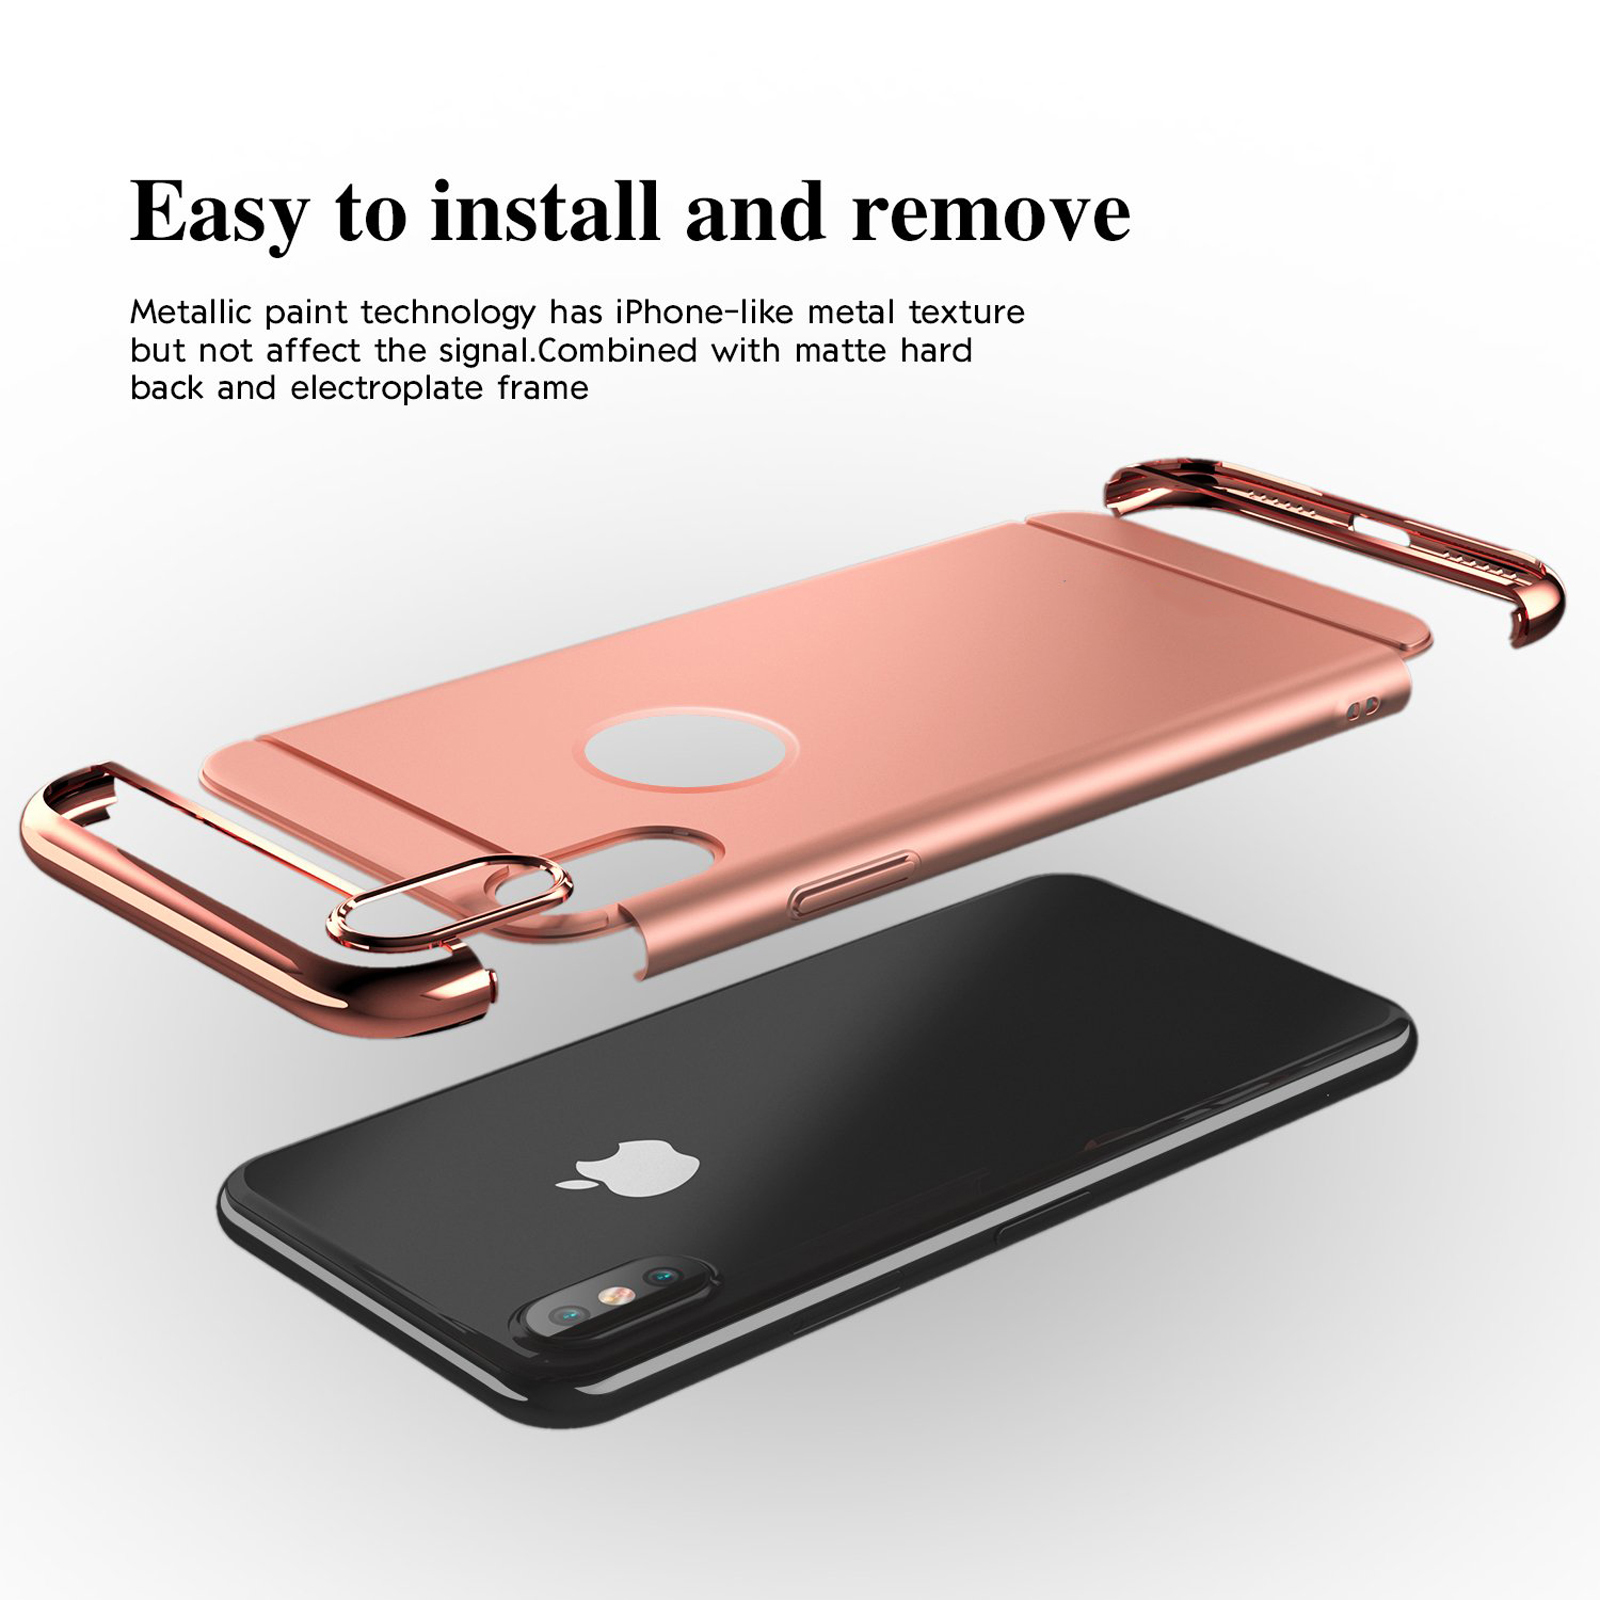 Luxury-Matte-Case-Tempered-Glass-Cover-For-Apple-iPhone-X-XS-XR-Max-10-8-7-6s-6 thumbnail 54